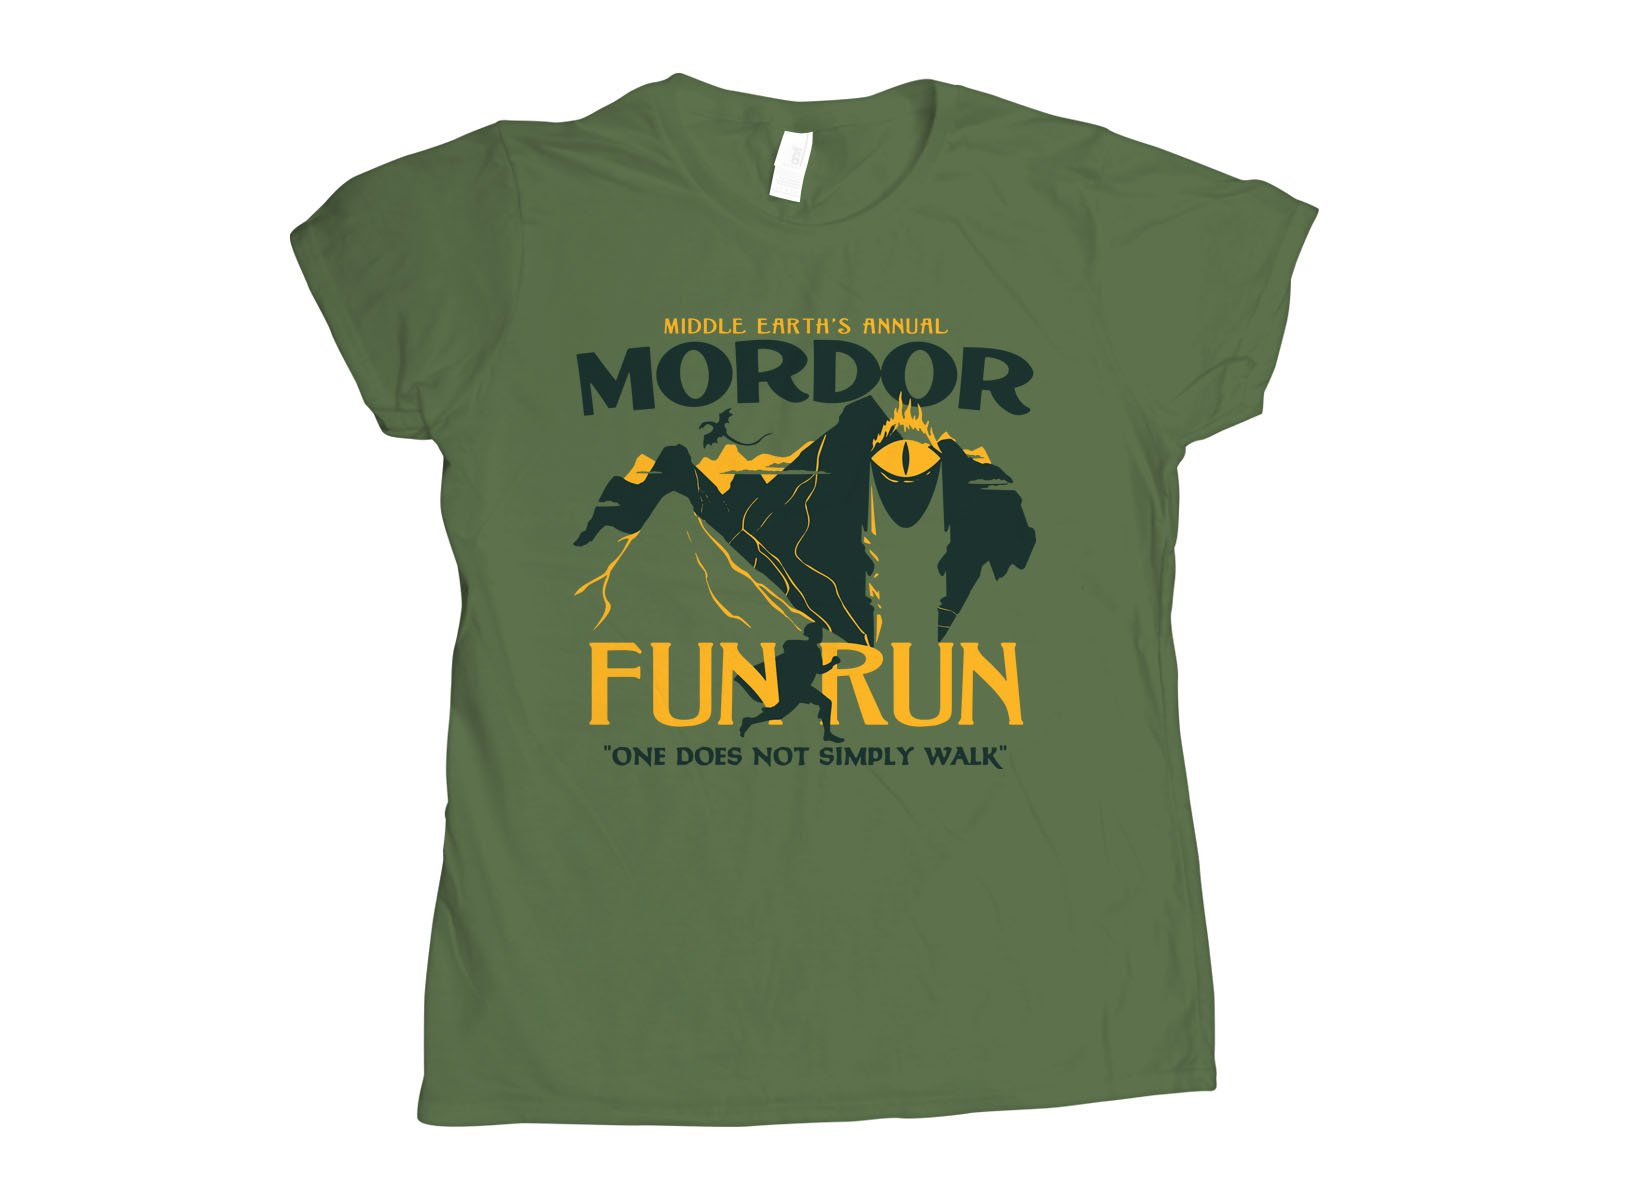 Mordor Fun Run on Womens T-Shirt